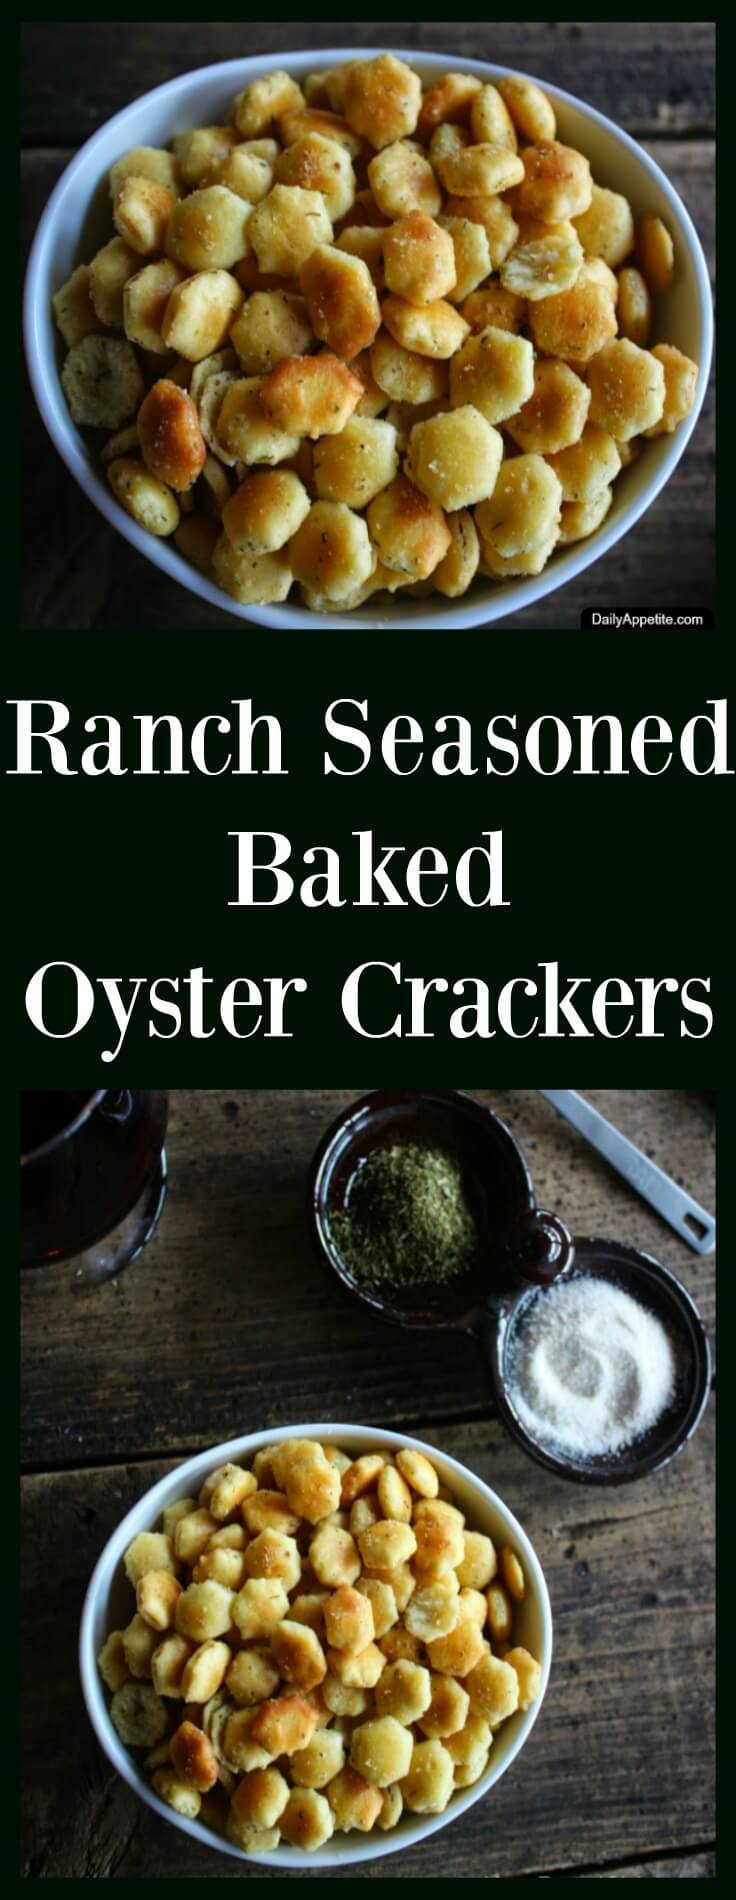 Ranch Seasoned Baked Oyster Crackers